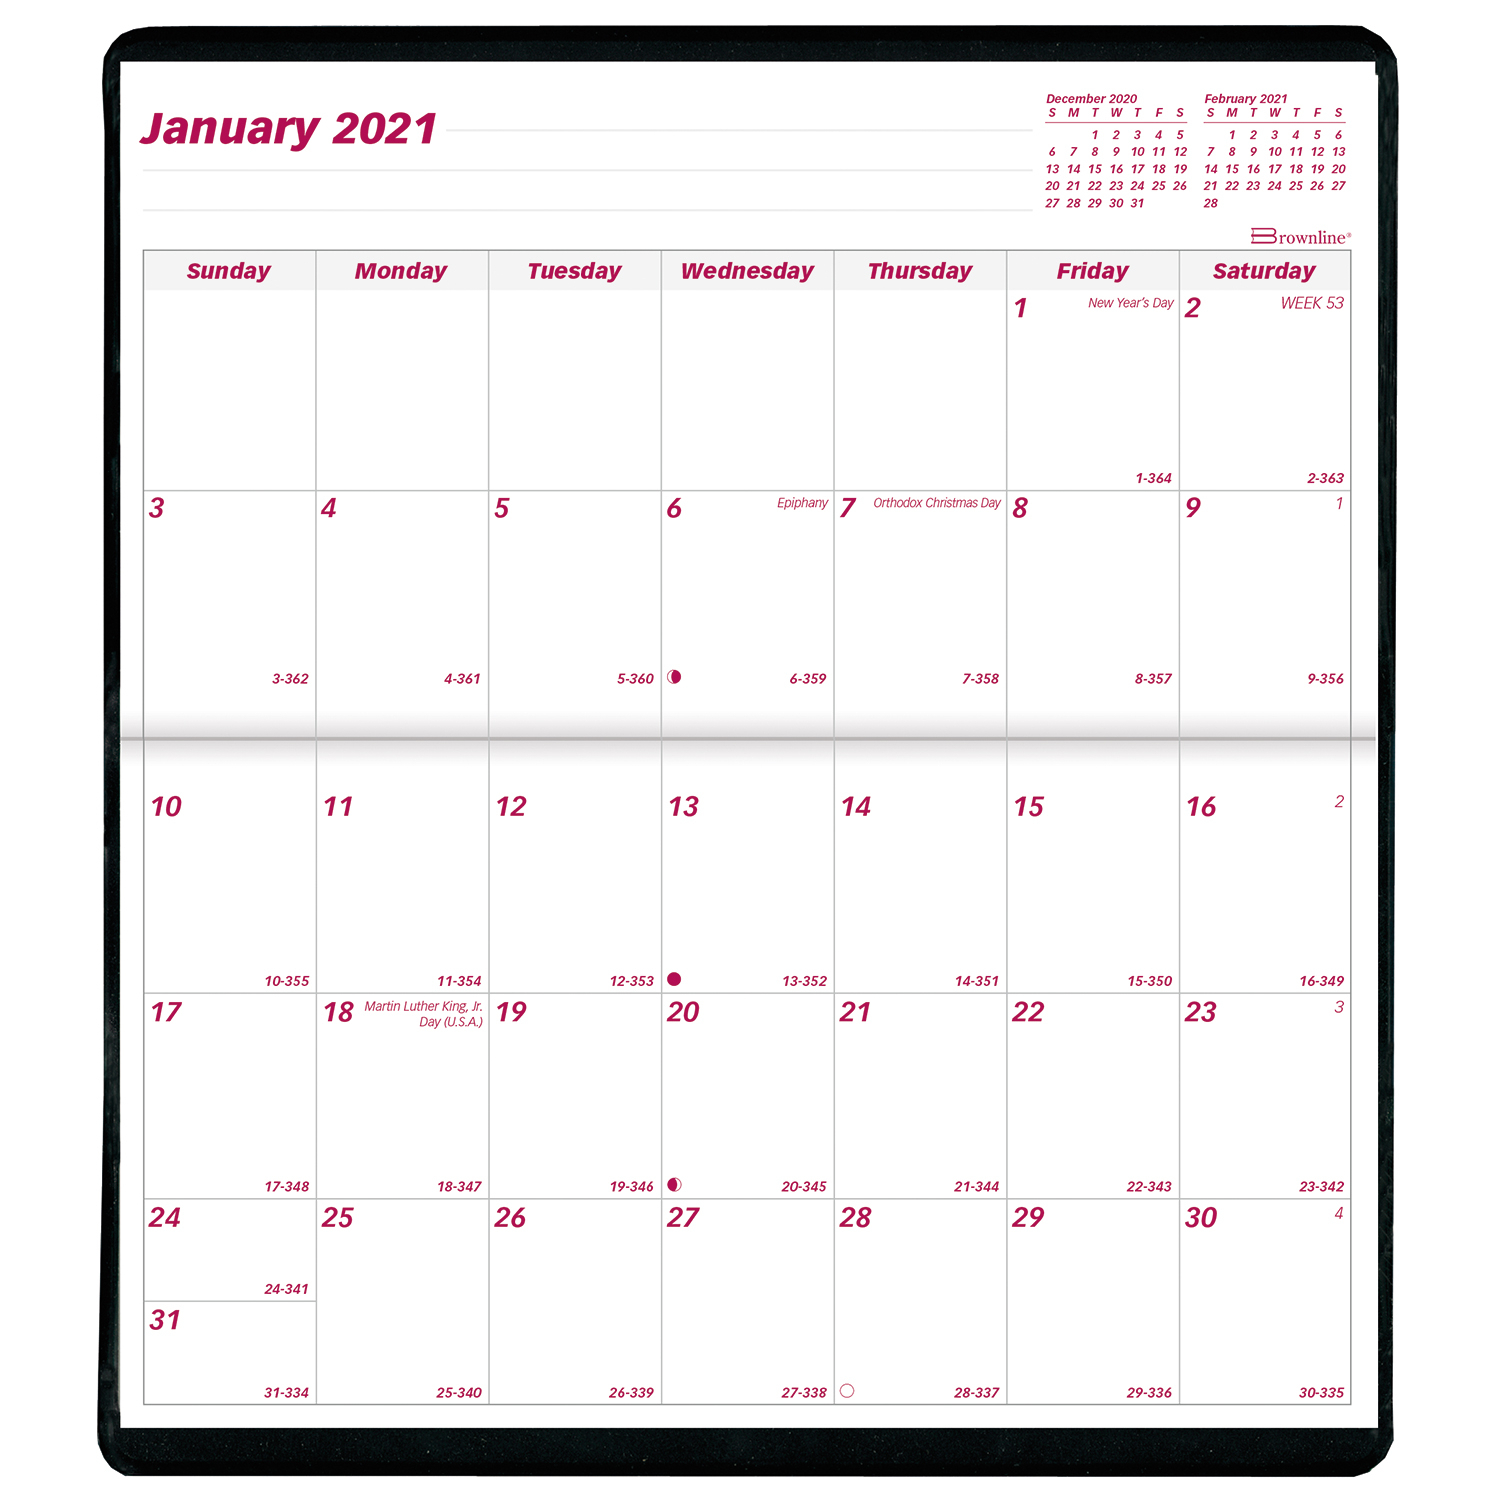 """Brownline 2-Year Monthly Pocket Planner, 6 1/2"""" X 3 1/2 within 2021-2021 2 Year Pocket Planner: 2 Year"""